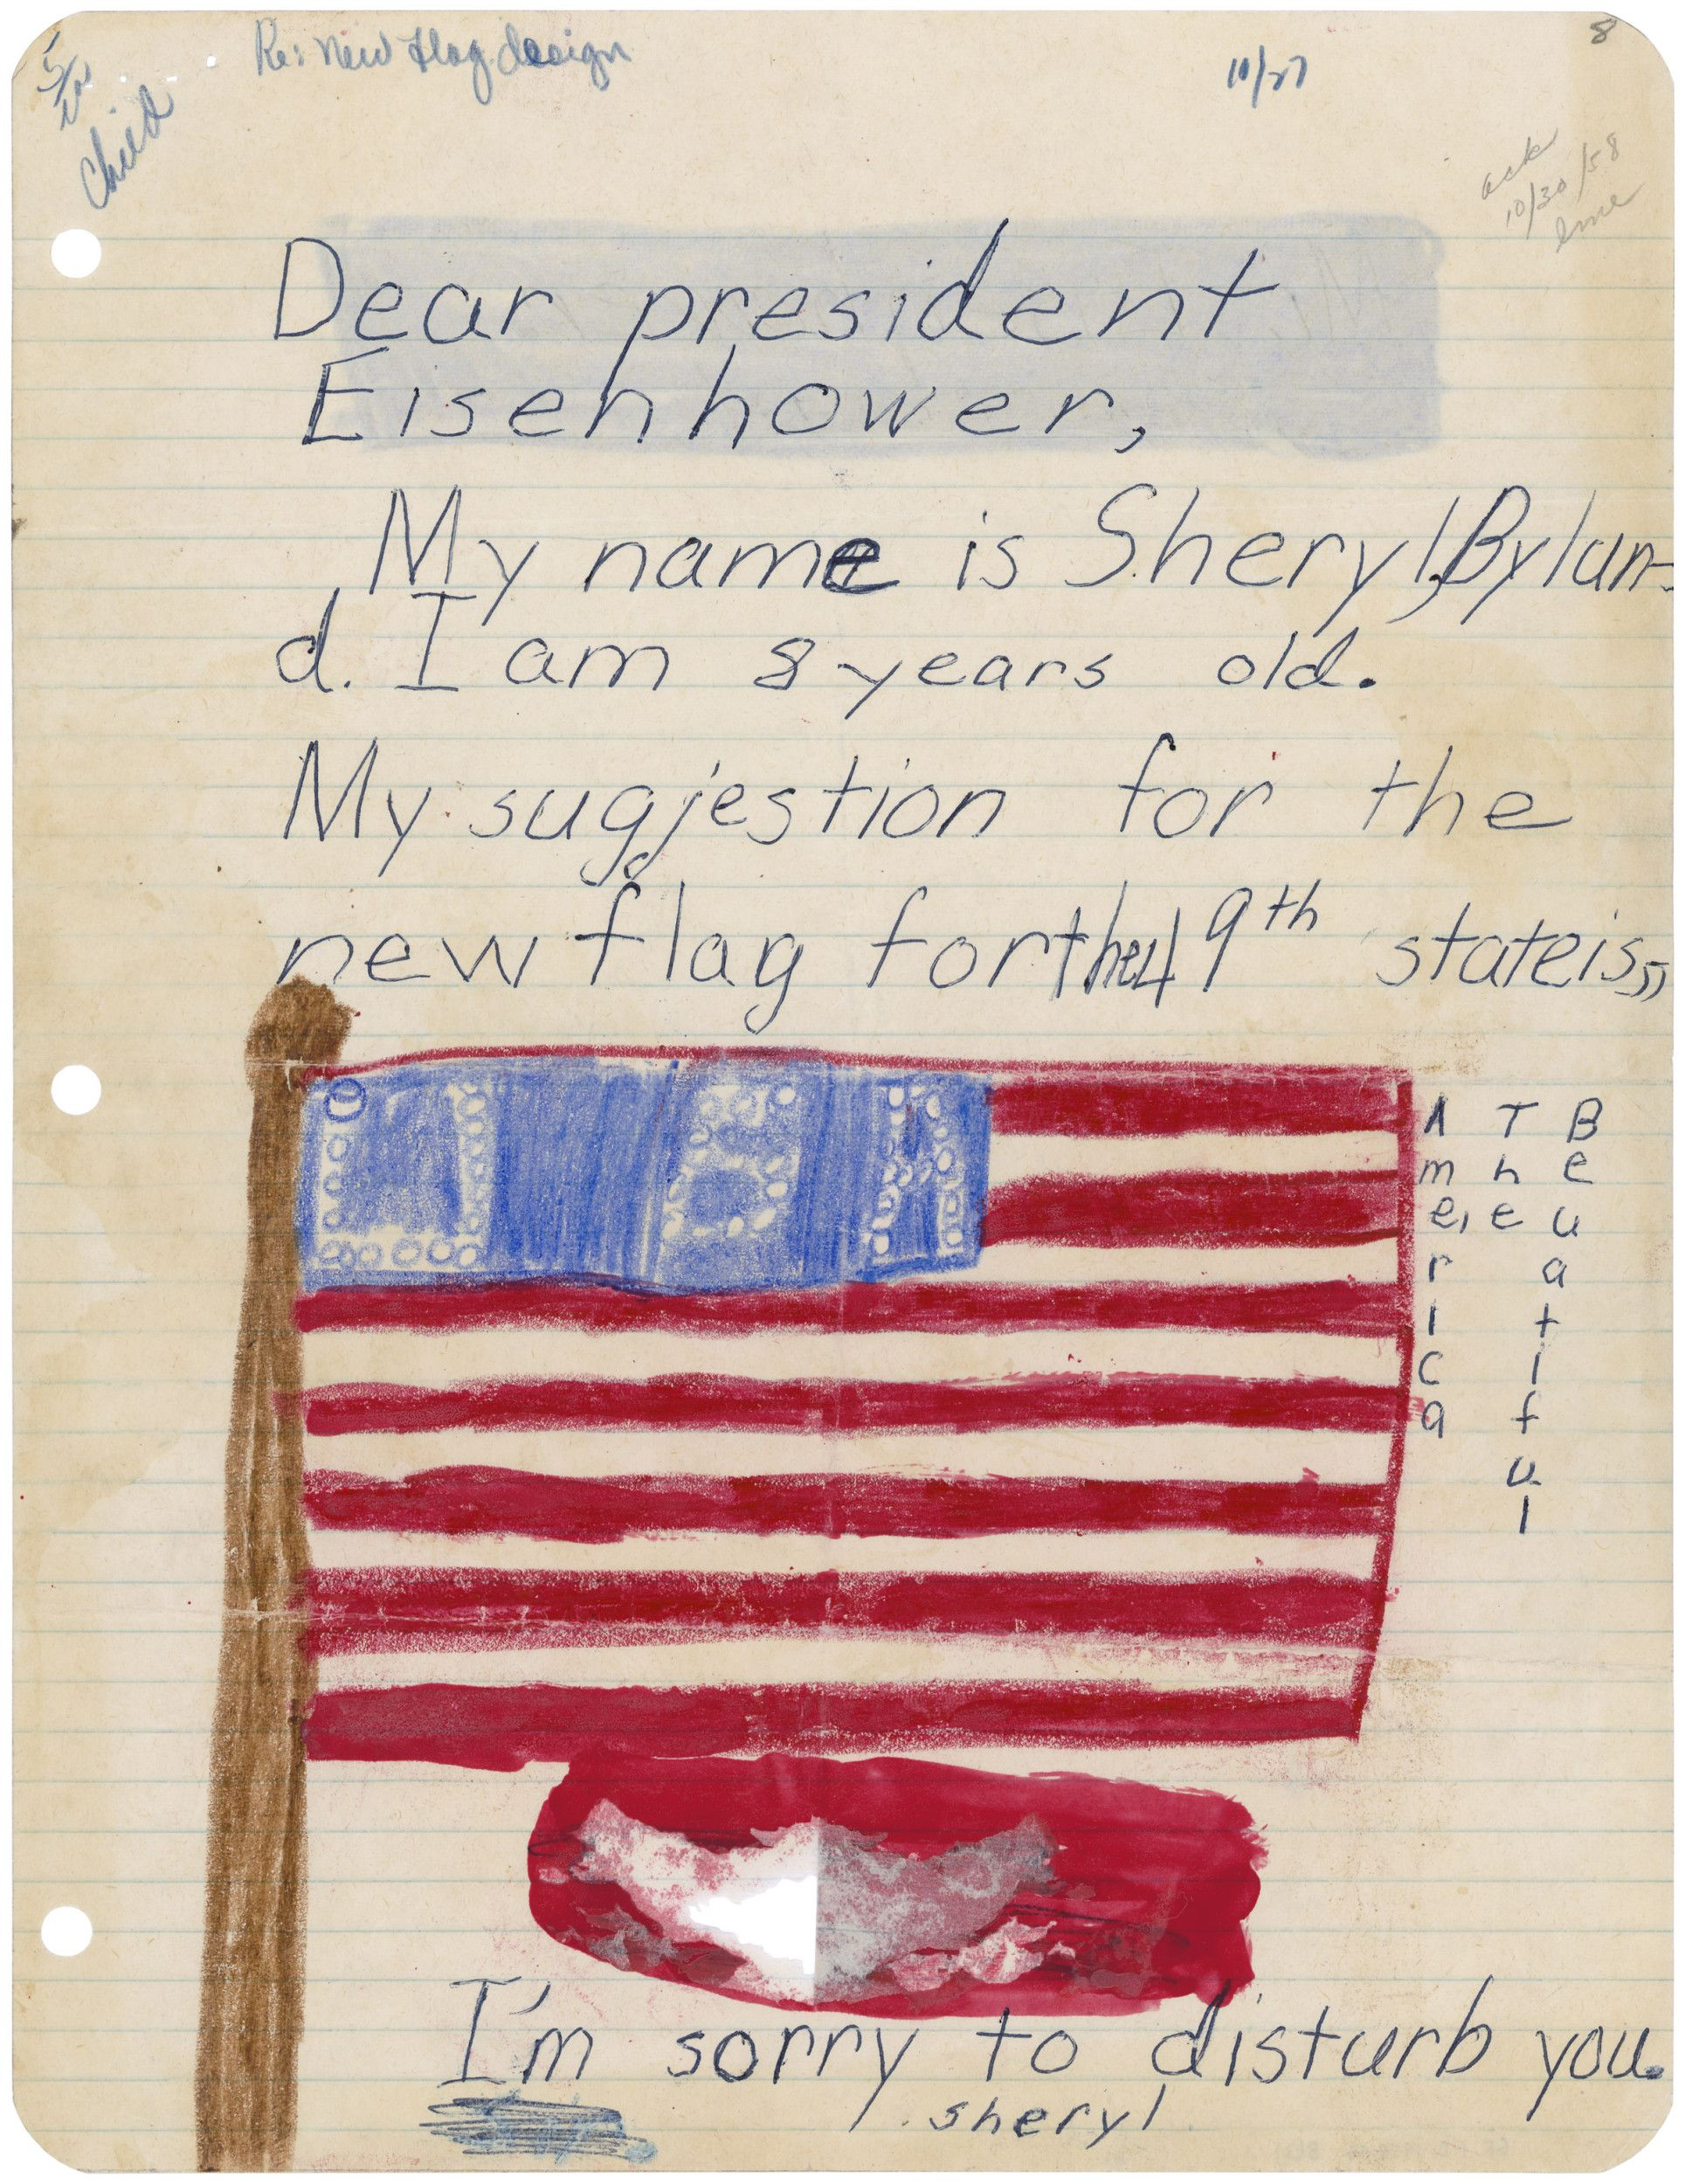 Letter with drawing of flag